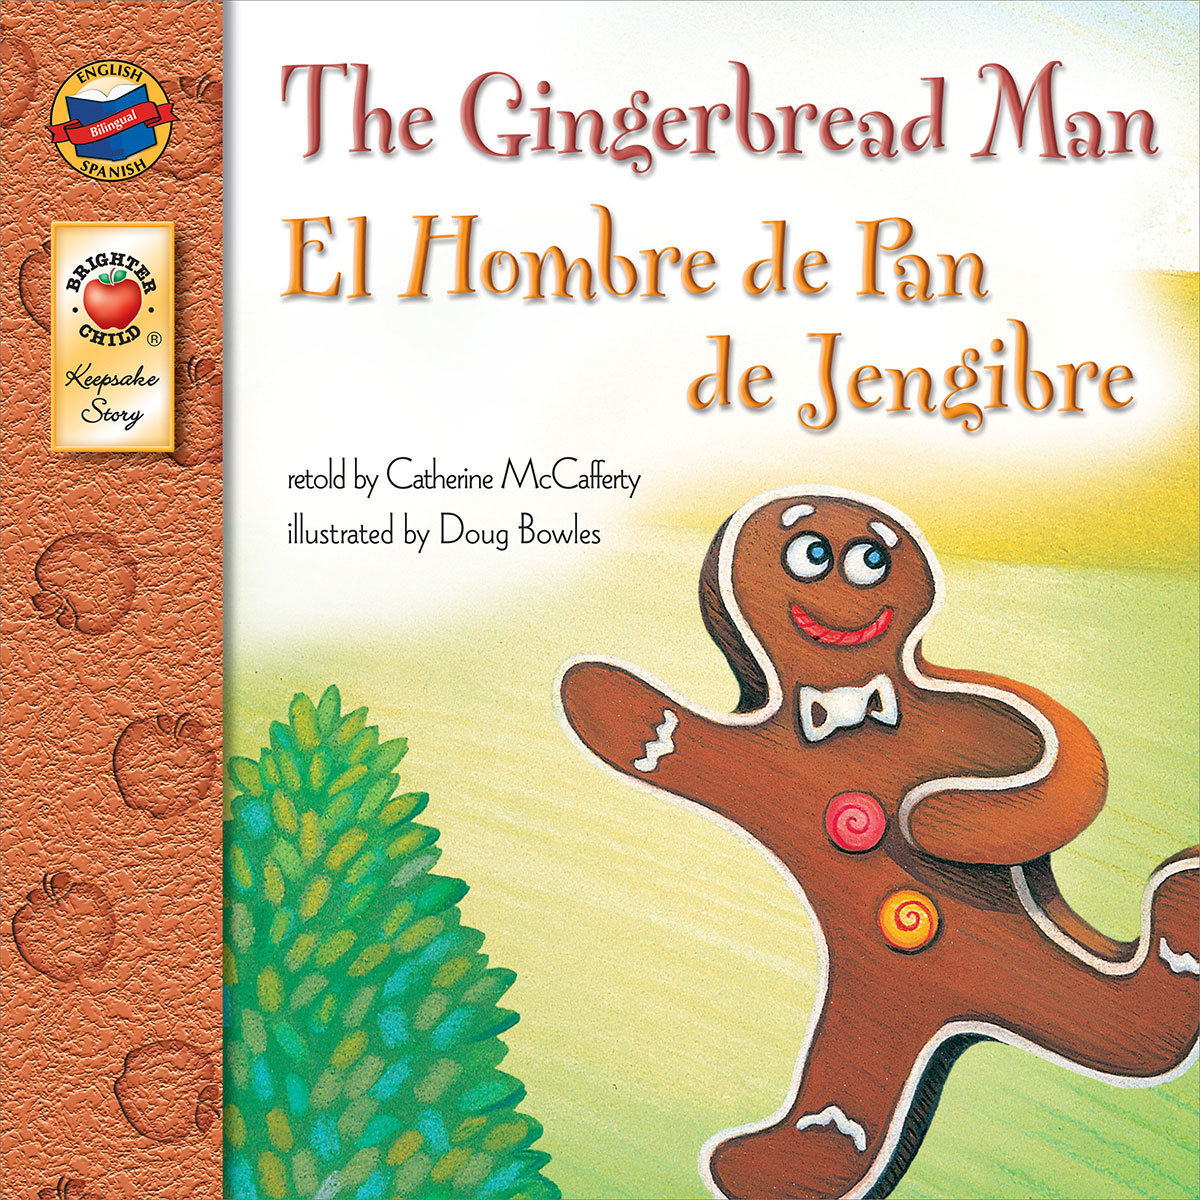 Spanish/English Book - The Gingerbread Man